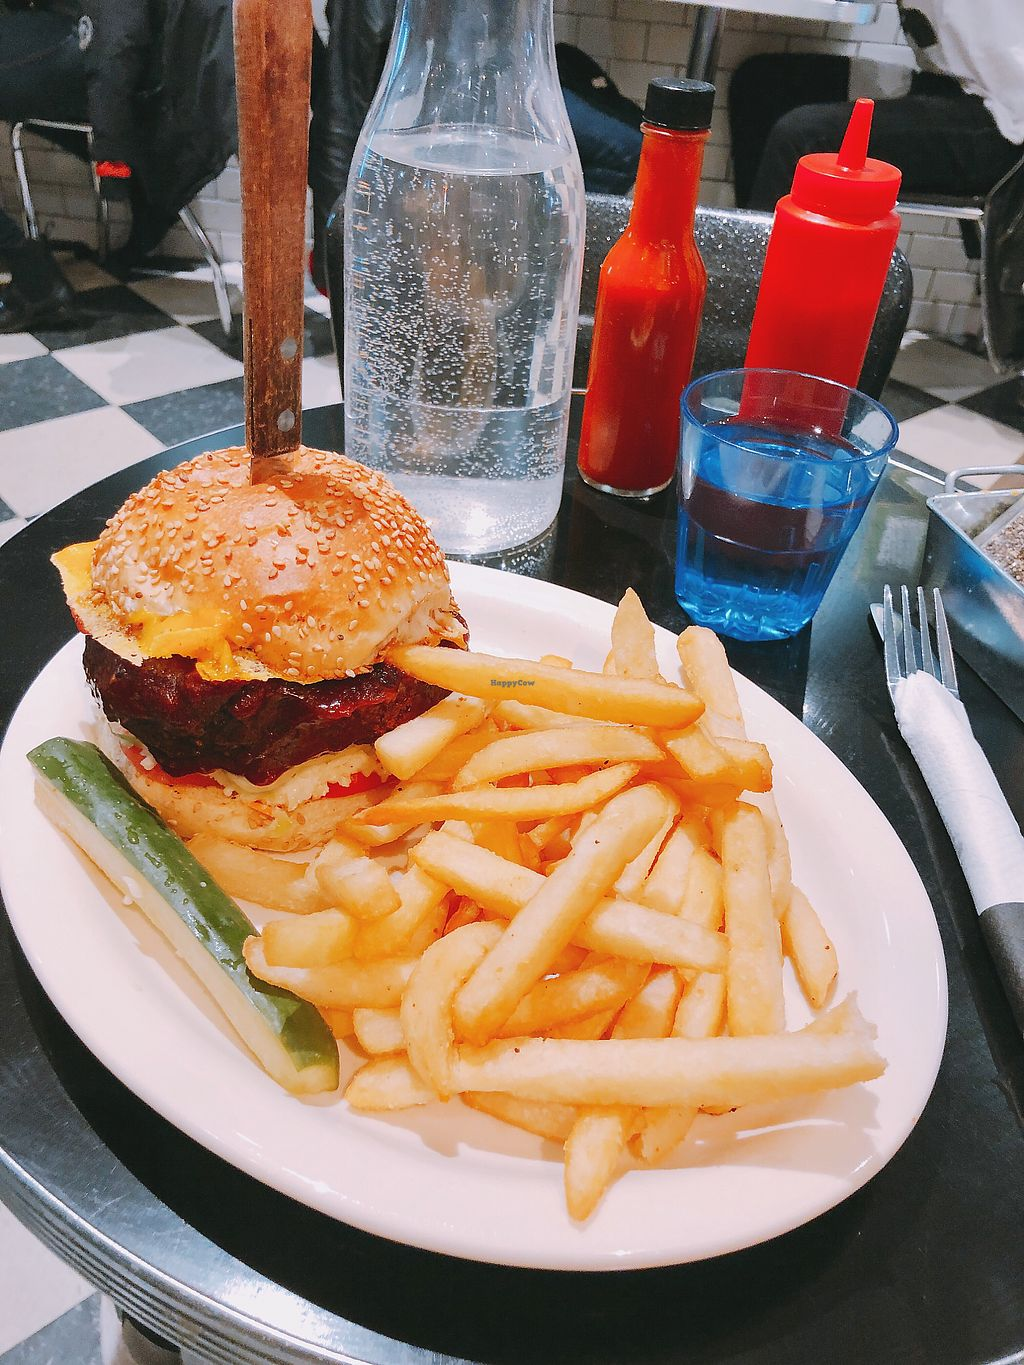 "Photo of Champs Diner  by <a href=""/members/profile/janitajasmin"">janitajasmin</a> <br/>BBQ Seitan Burger <br/> March 13, 2018  - <a href='/contact/abuse/image/24286/370126'>Report</a>"